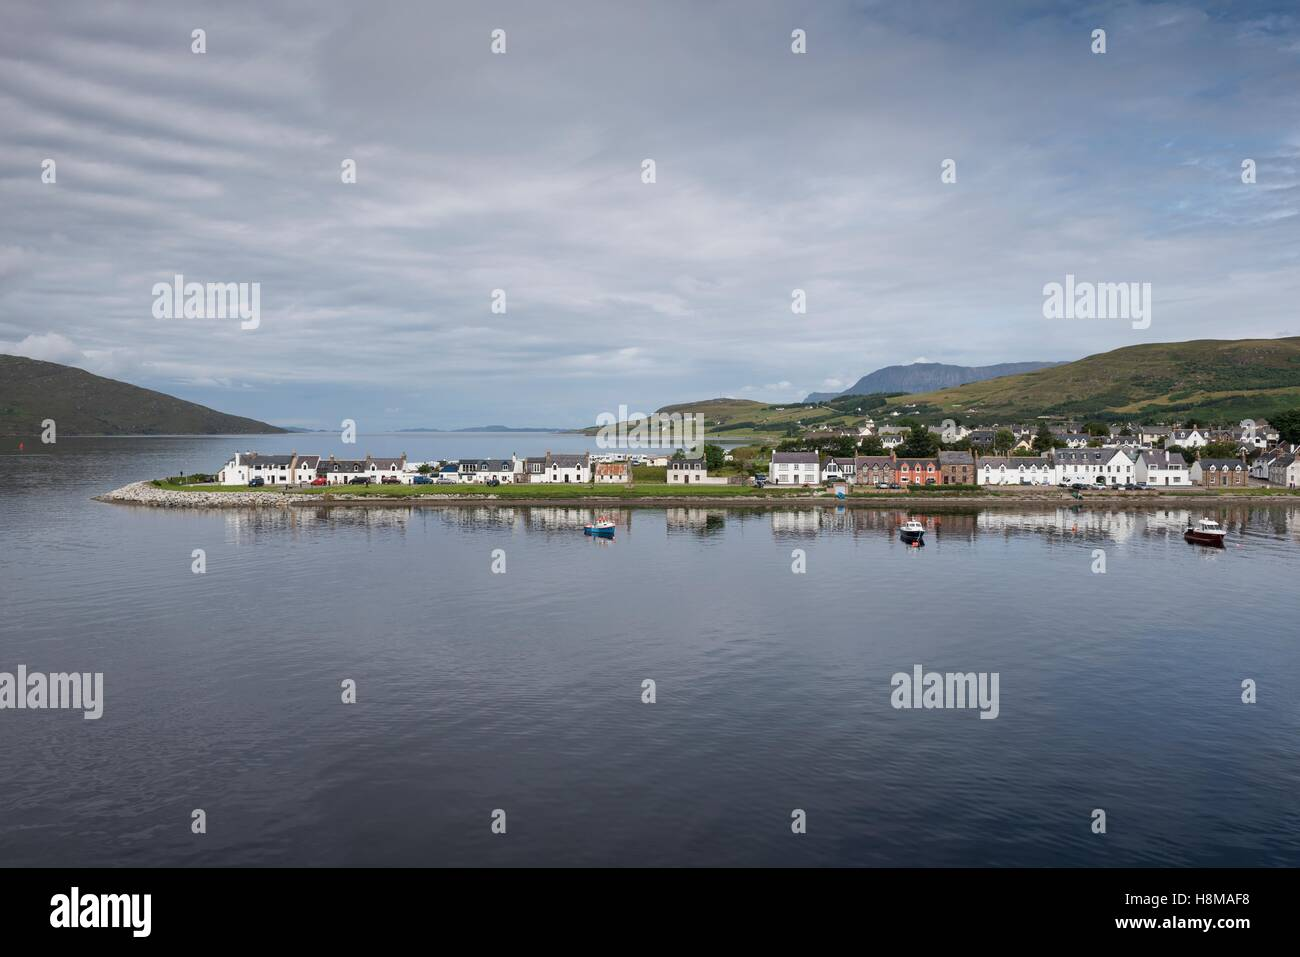 Ullapool port at Loch Broom in the Northwest Highlands, Ross and Cromarty, Scotland, United Kingdom - Stock Image